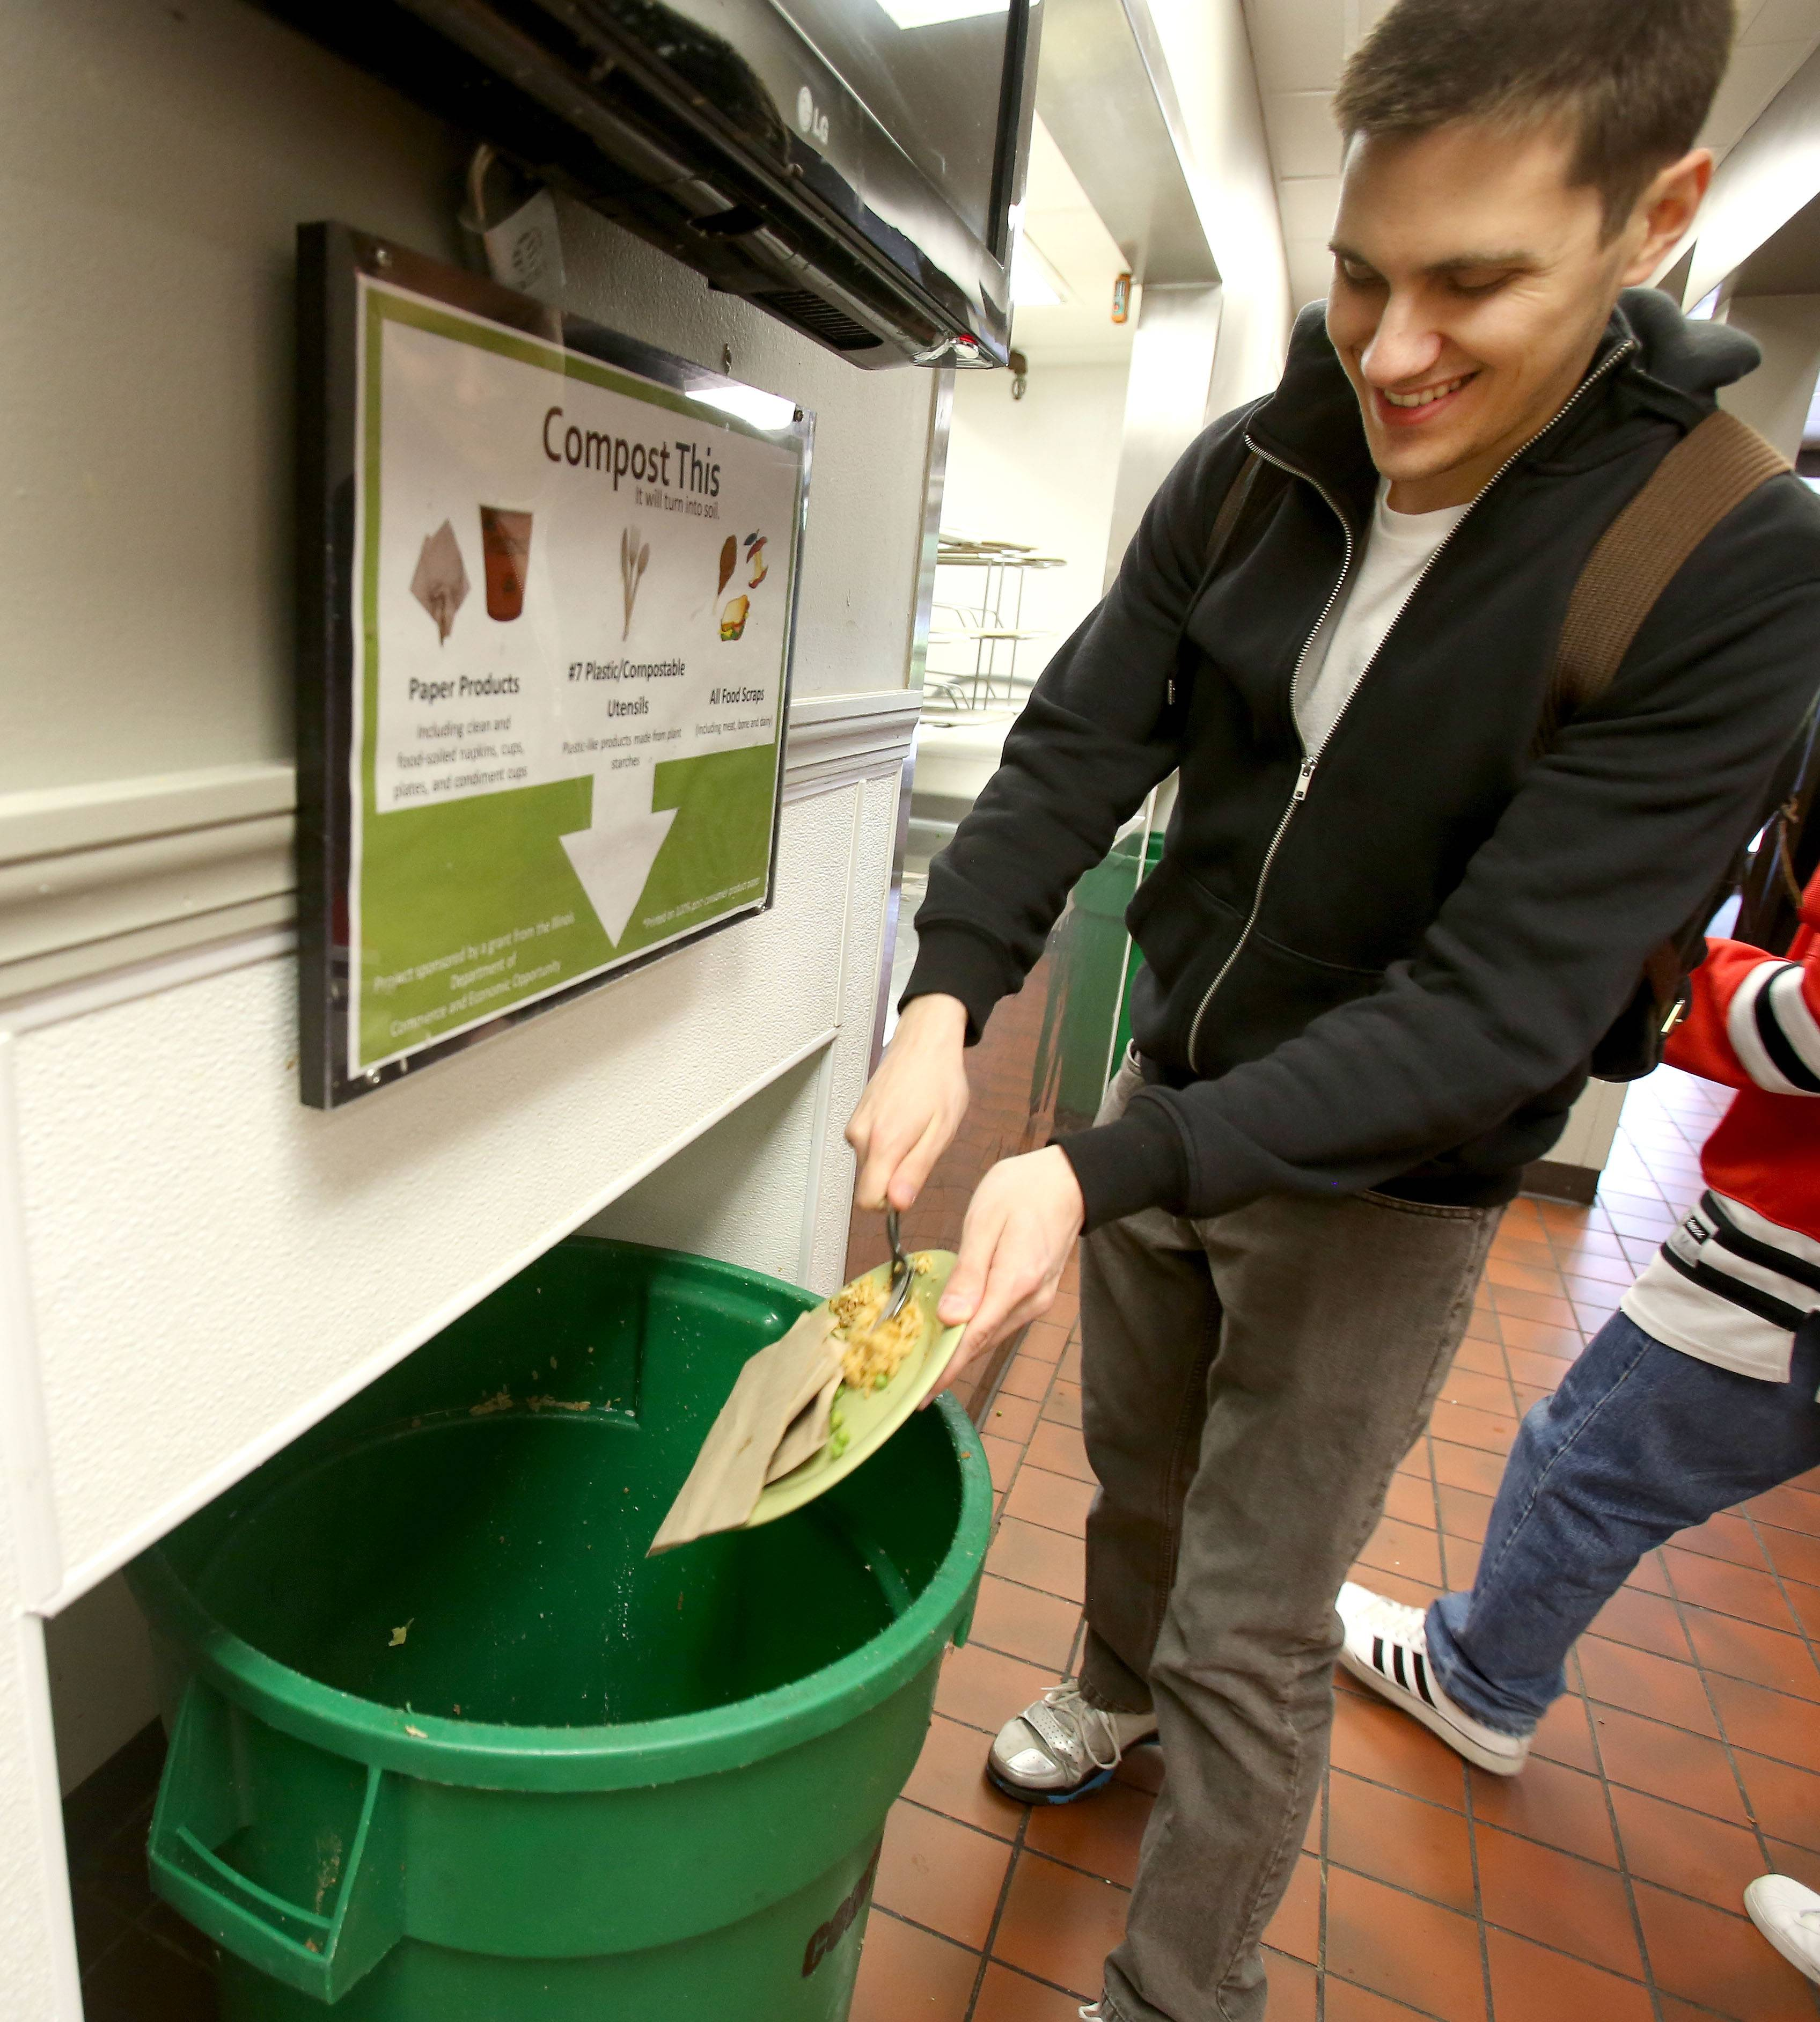 Sophomore Max Kachinske throws his leftovers in the compost bin in the cafeteria at Kaufman Hall at North Central College in Naperville. Students have been composting there for three years.